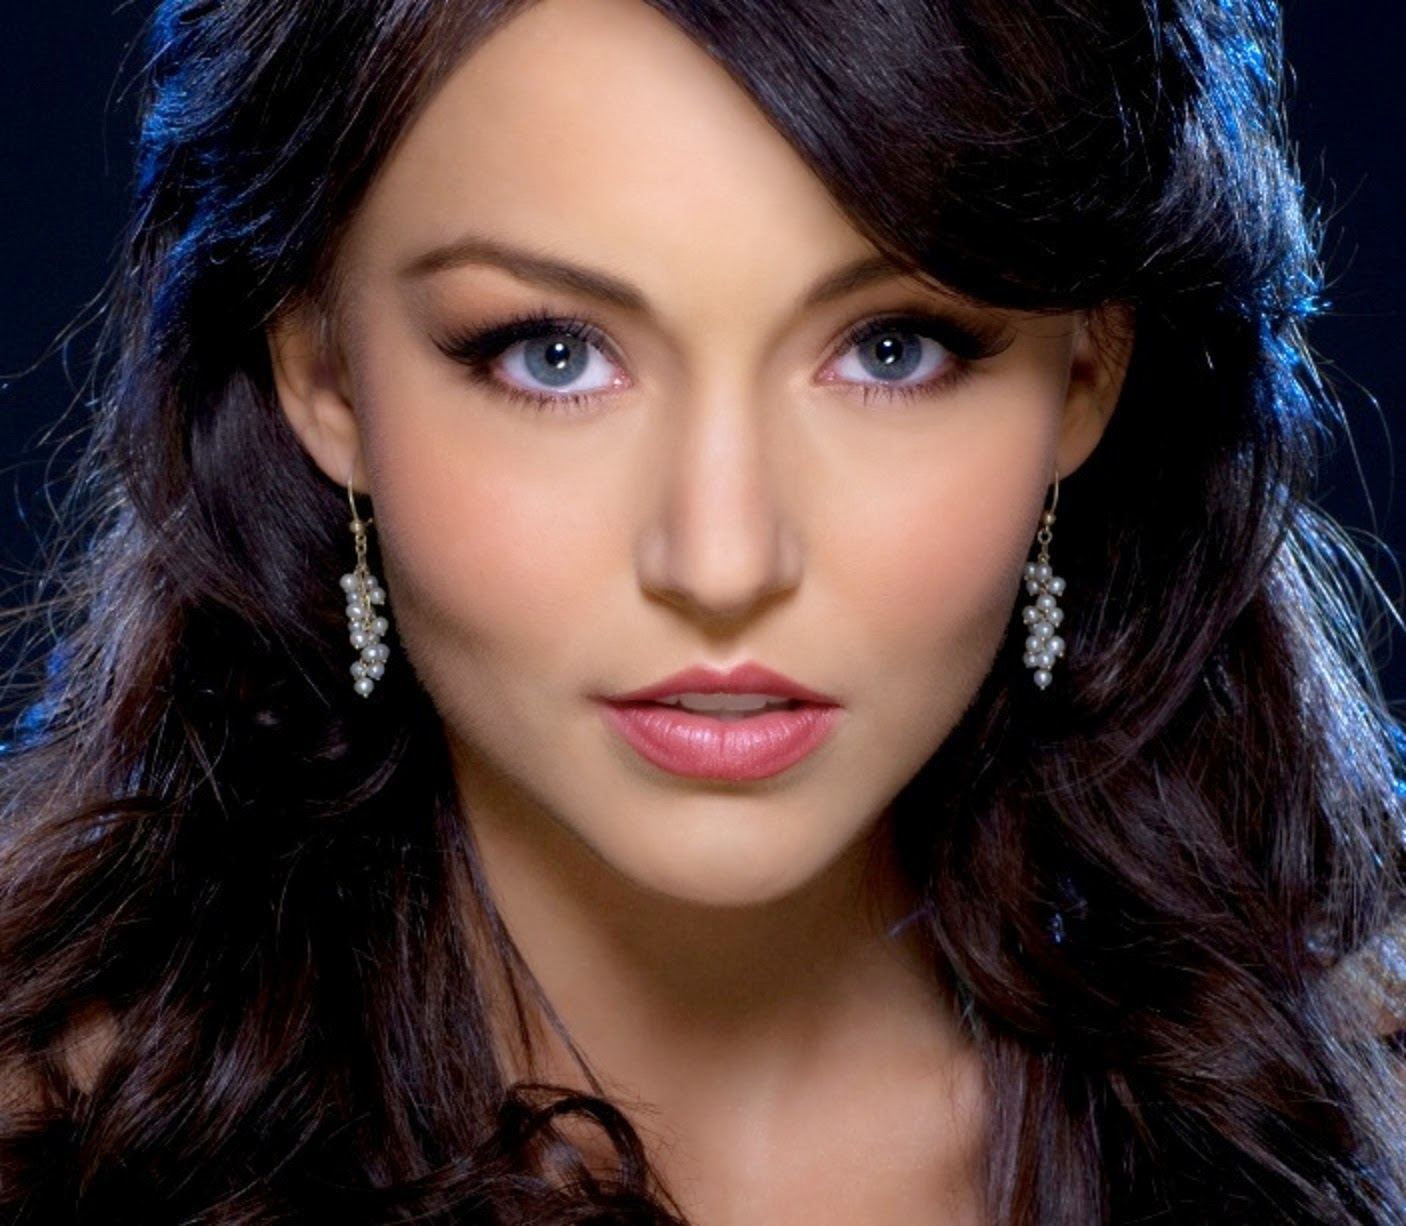 Hollywood Actress Wallpaper: Angelique Boyer Wallpapers